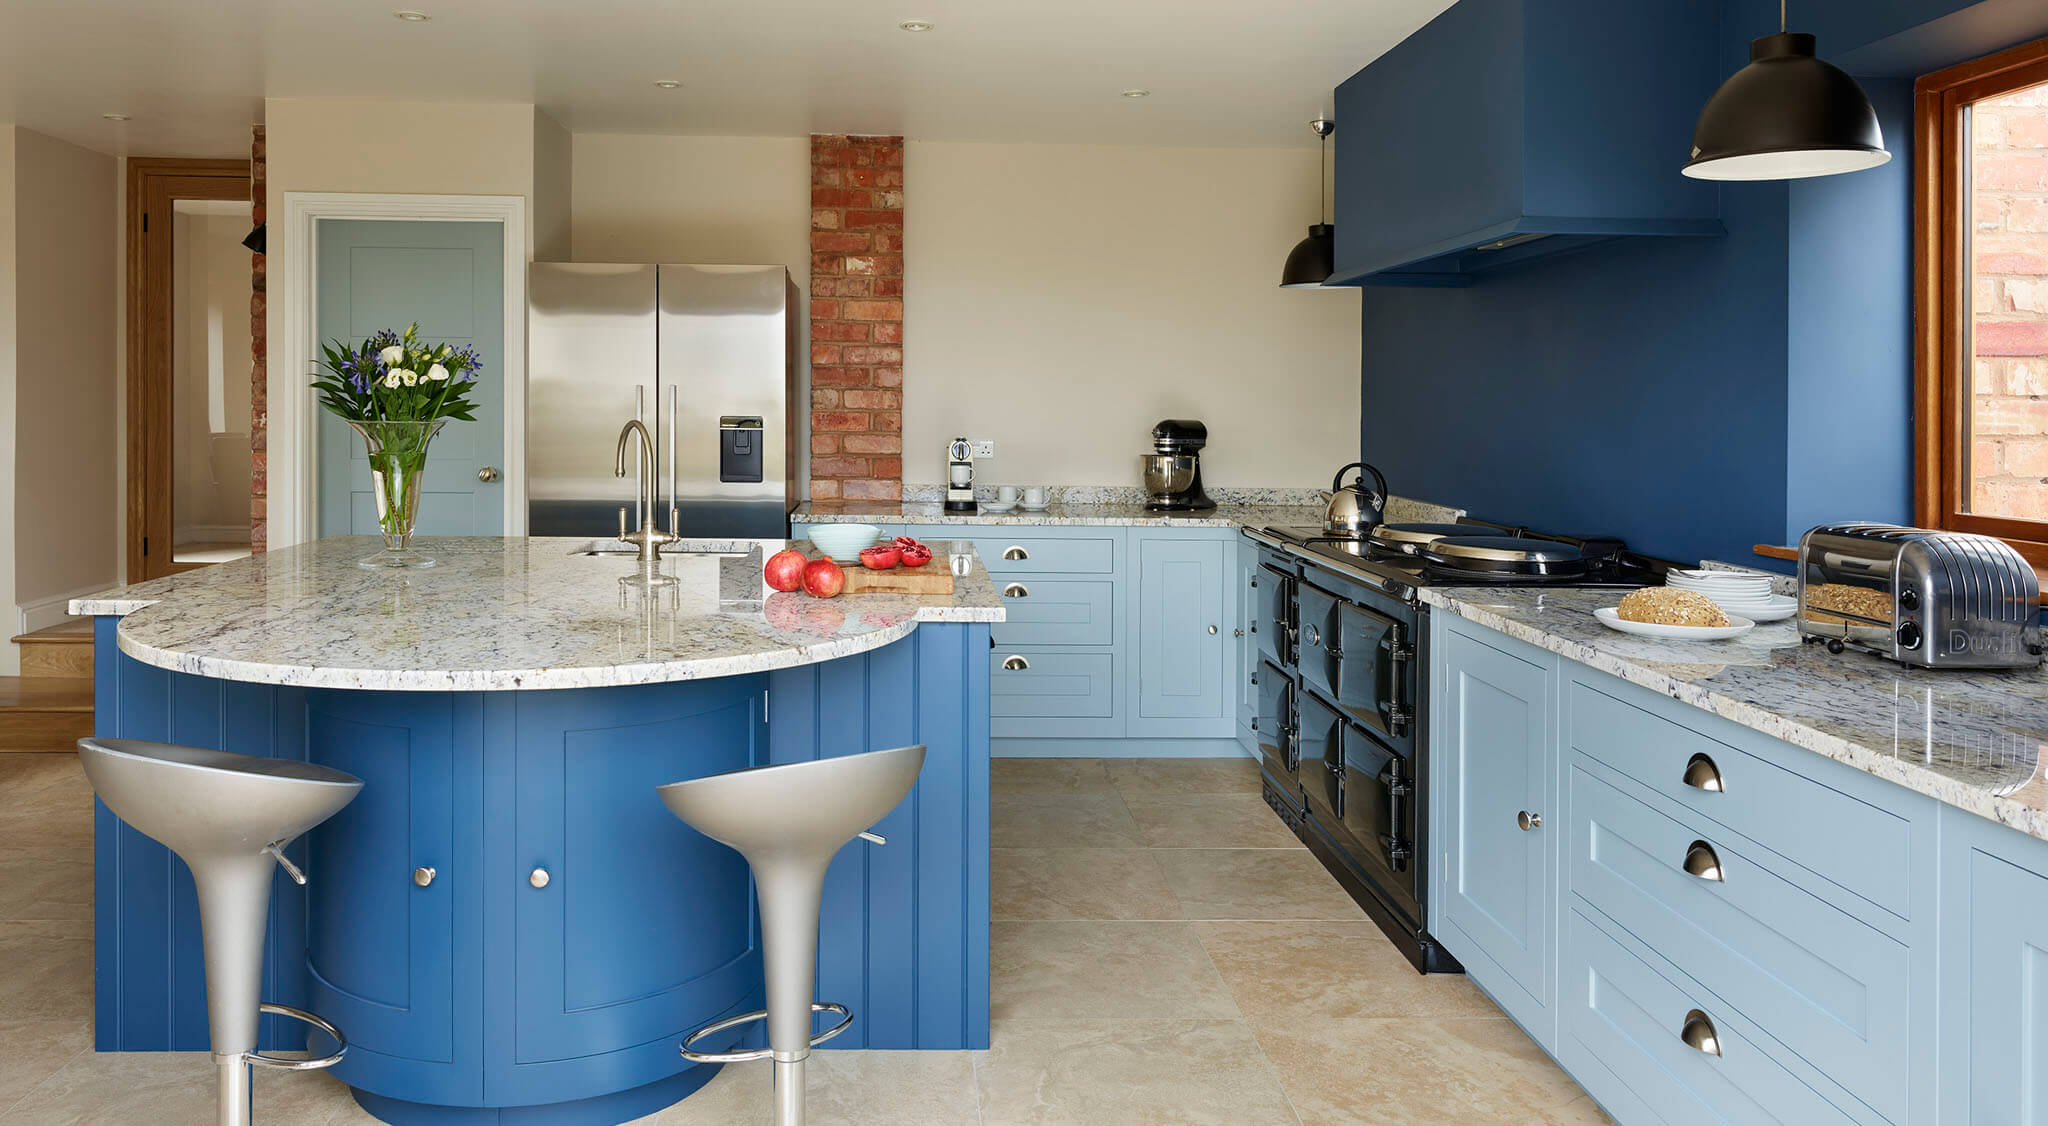 Blue Shaker Kitchen With Curved Cupboards